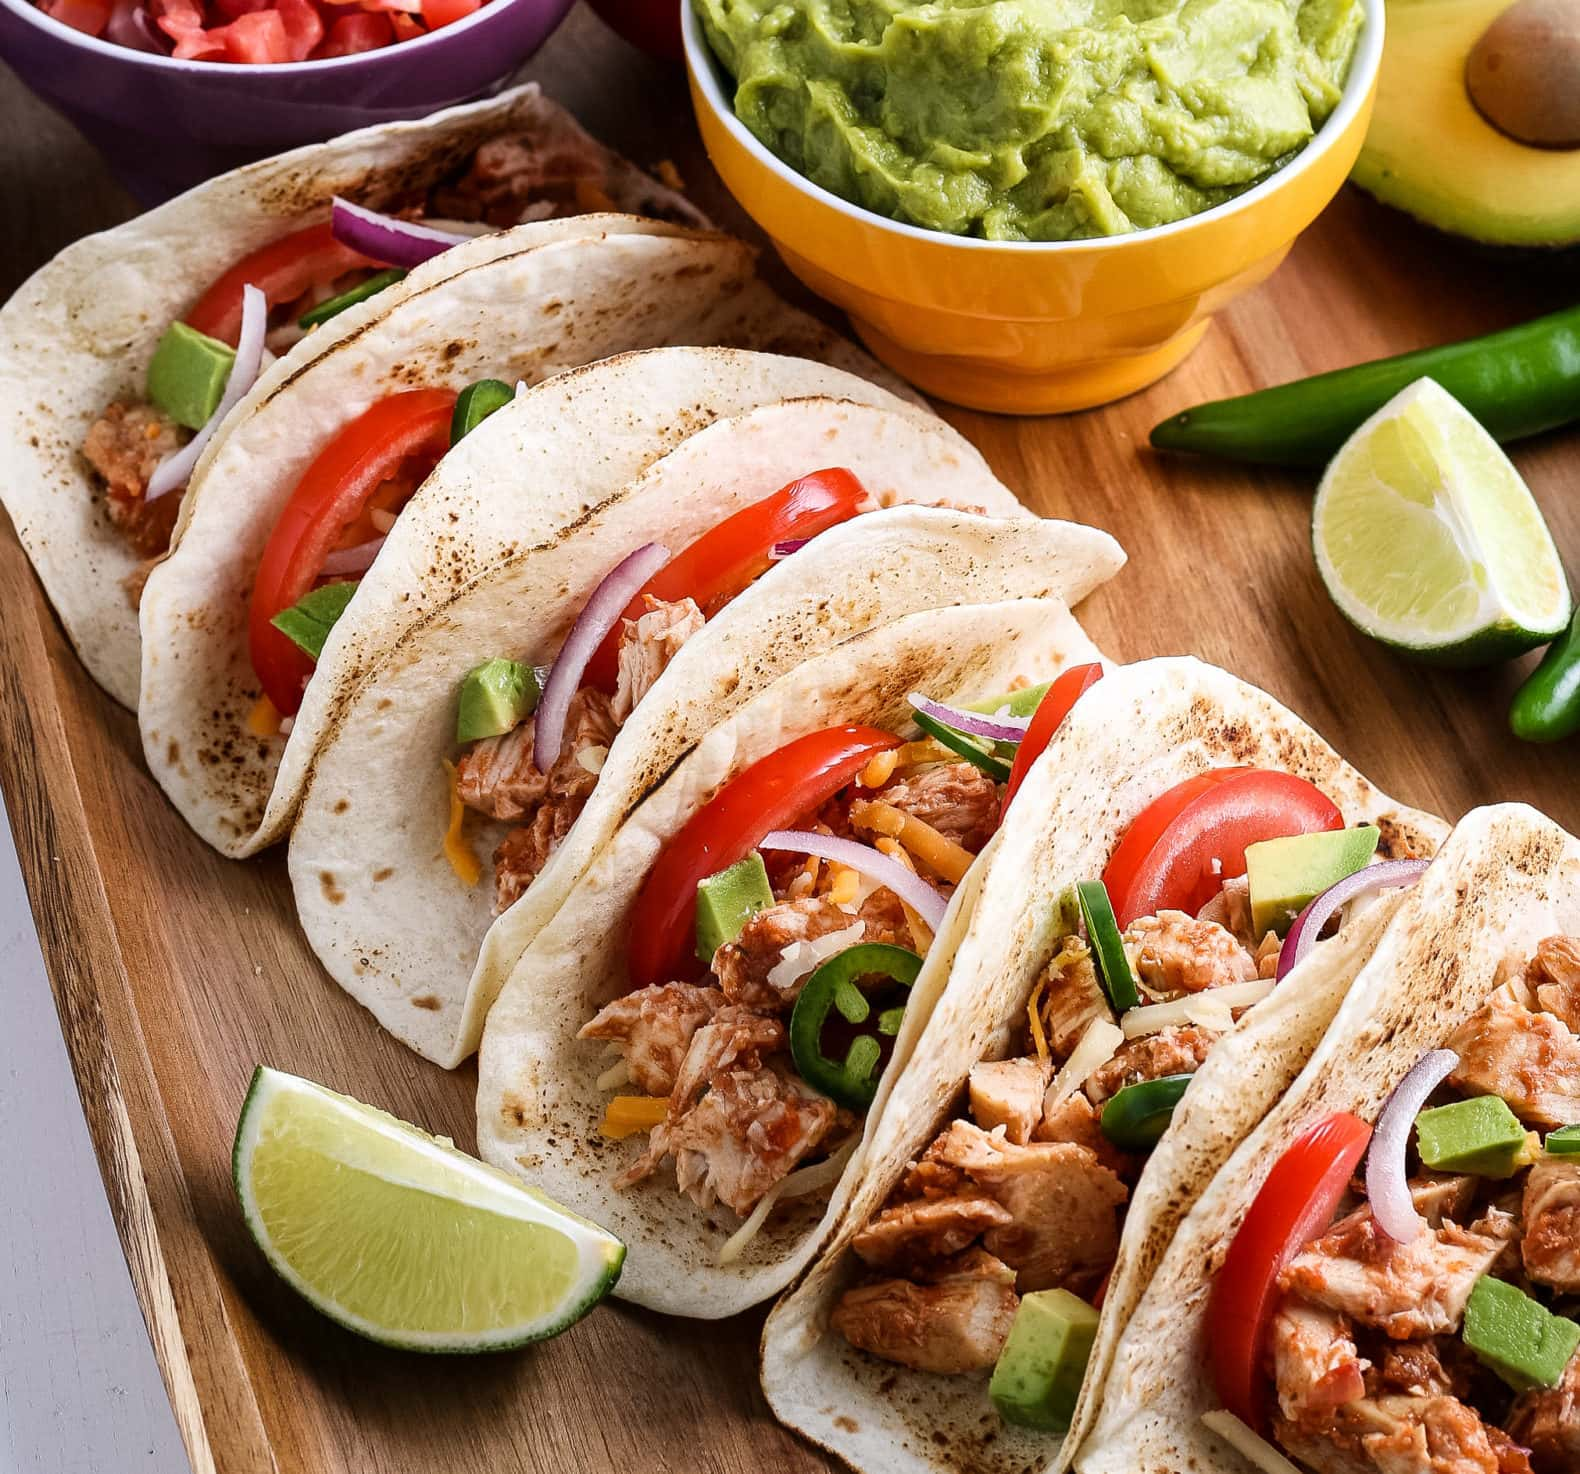 Ninja Foodi Chicken Tacos Crockpot Mommy Hates Cooking